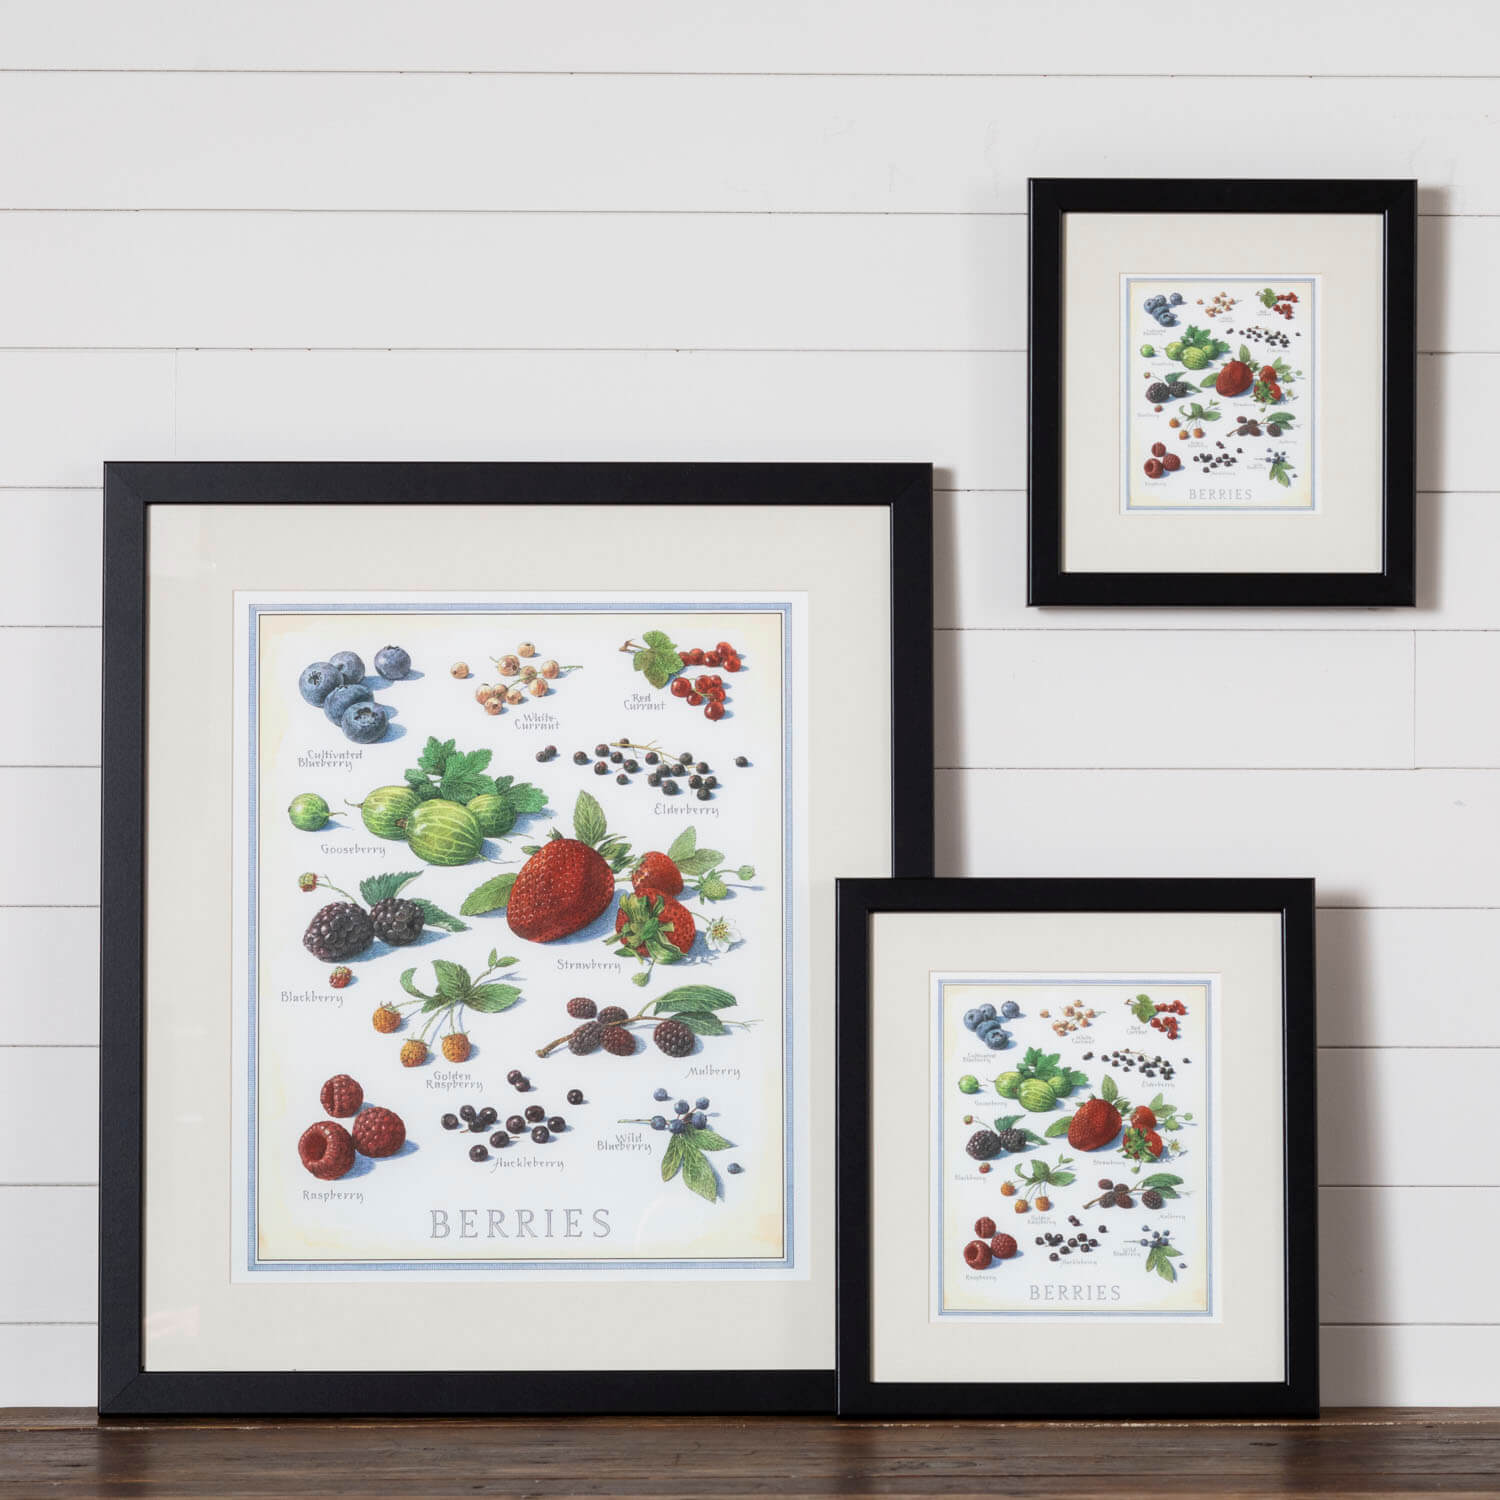 Cook's Illustrated Framed Print: Berries